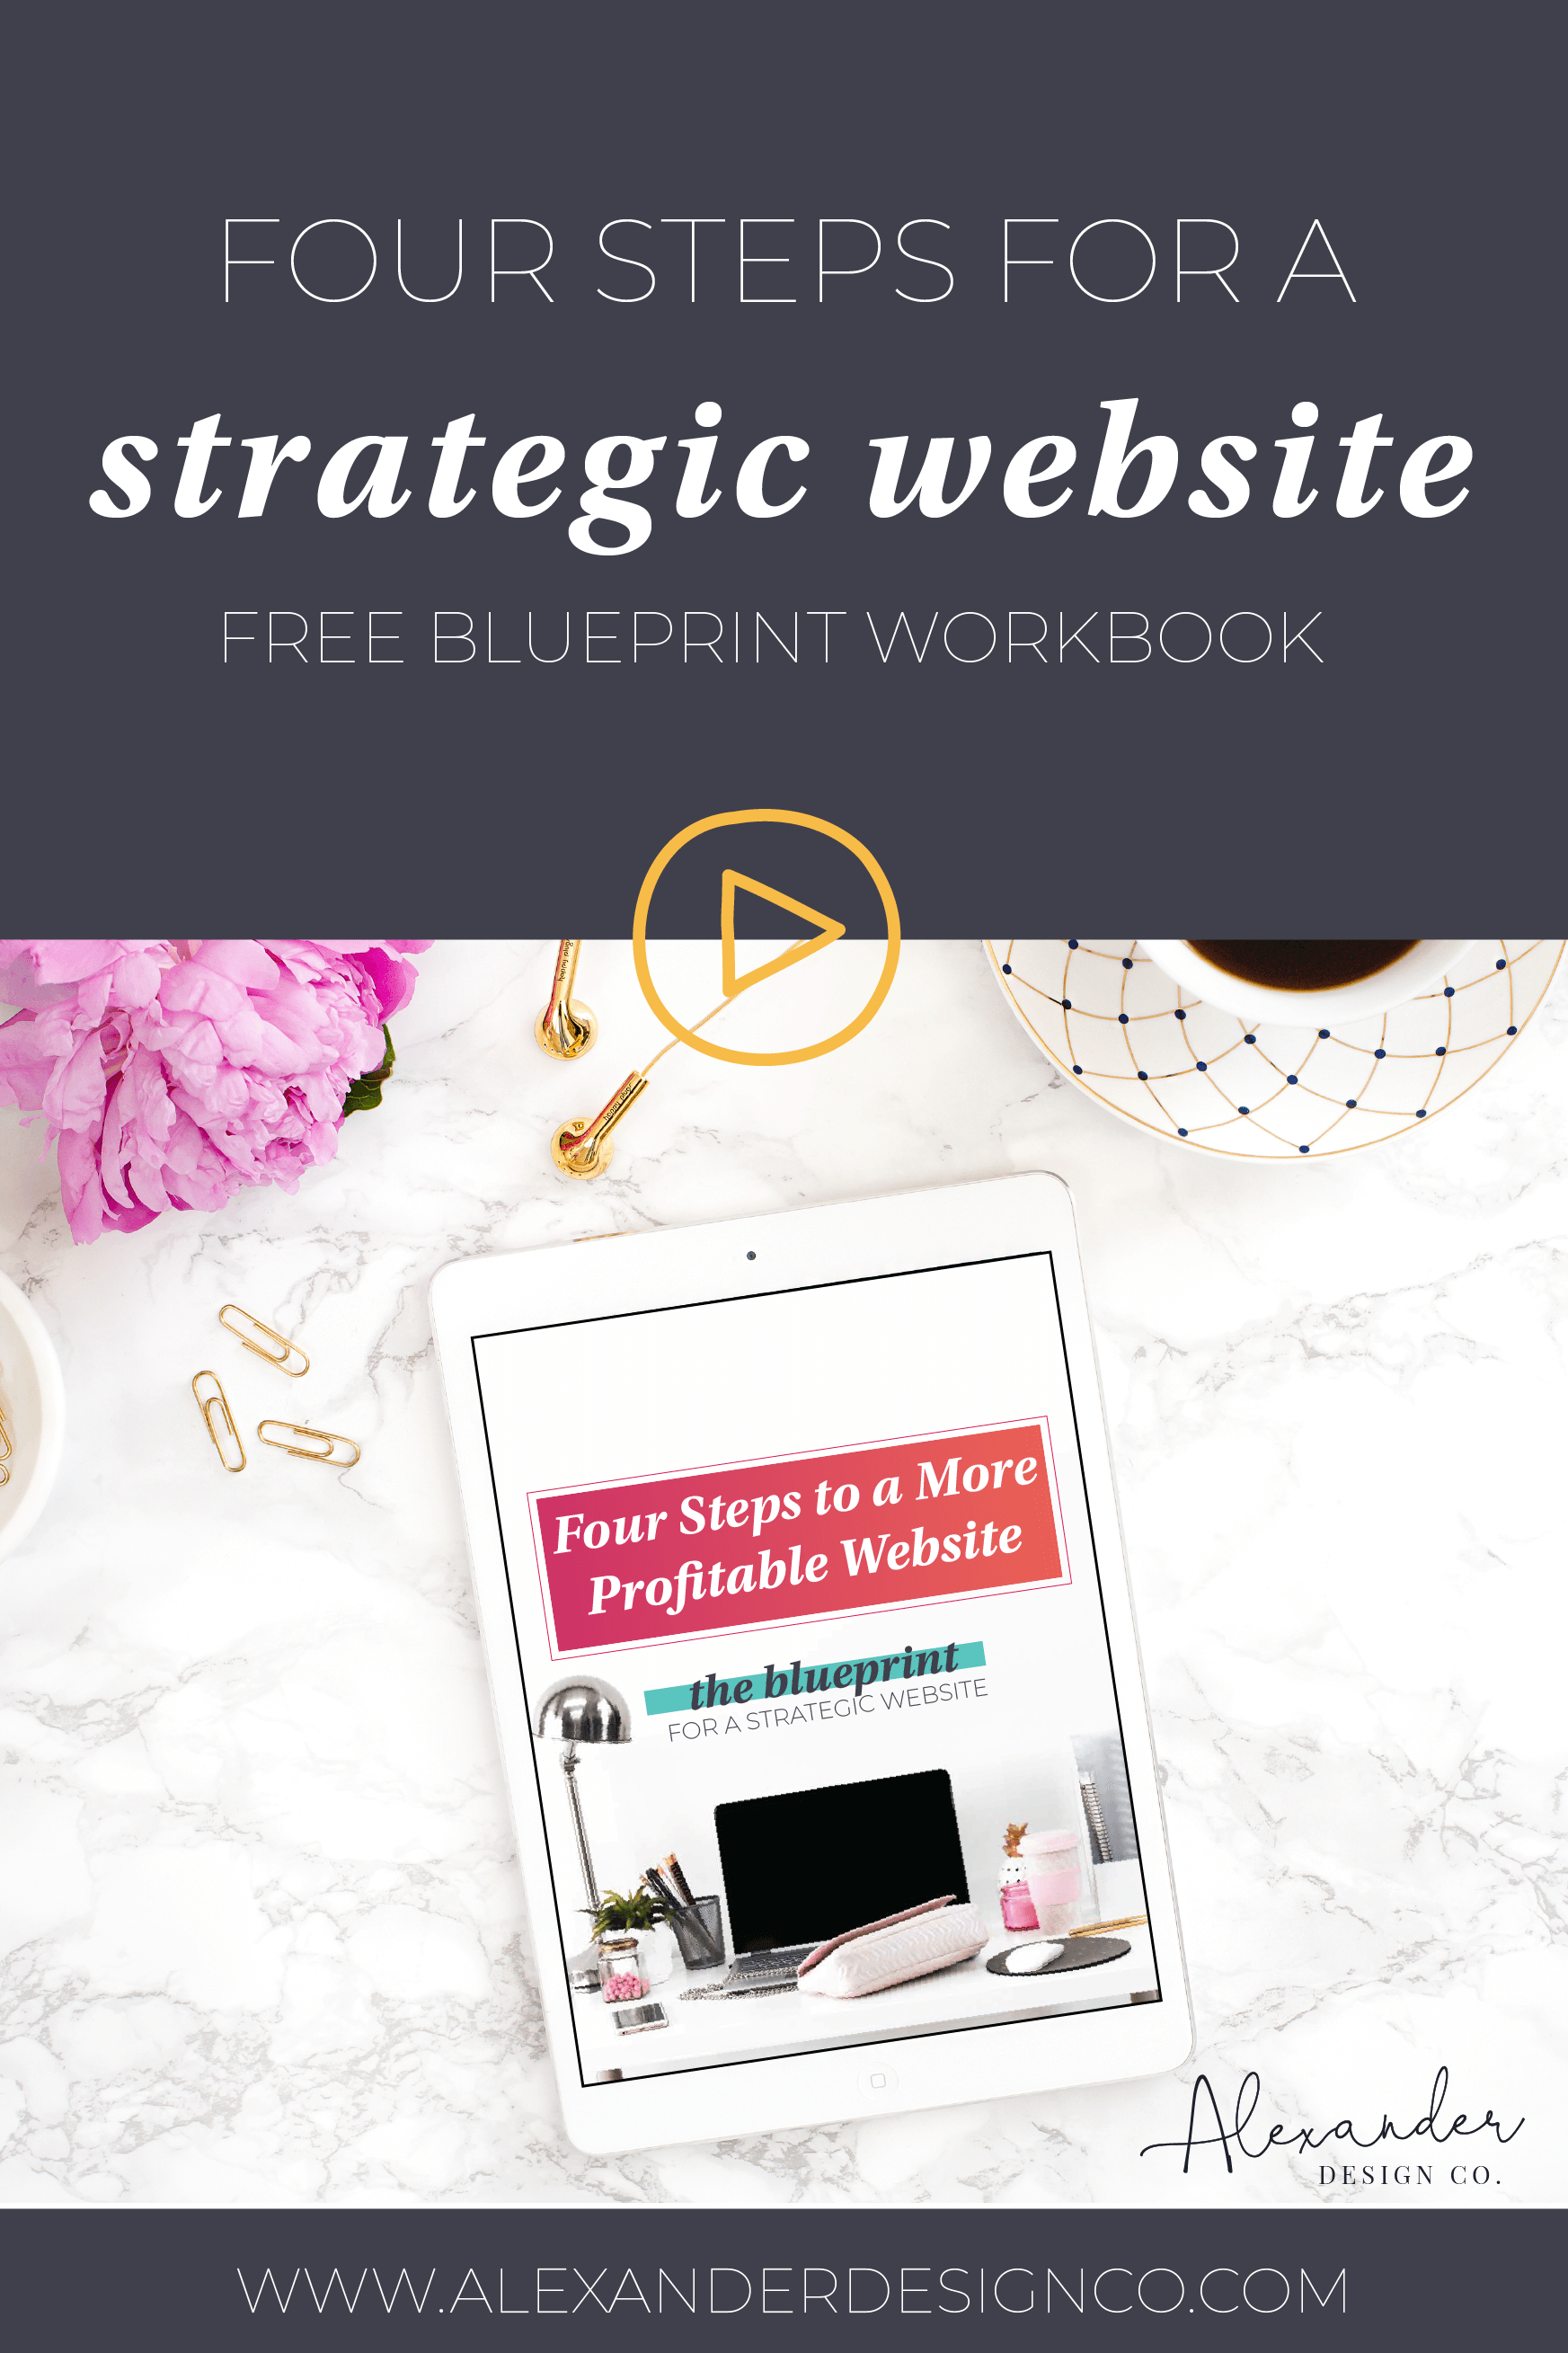 Four steps to make your website more effective